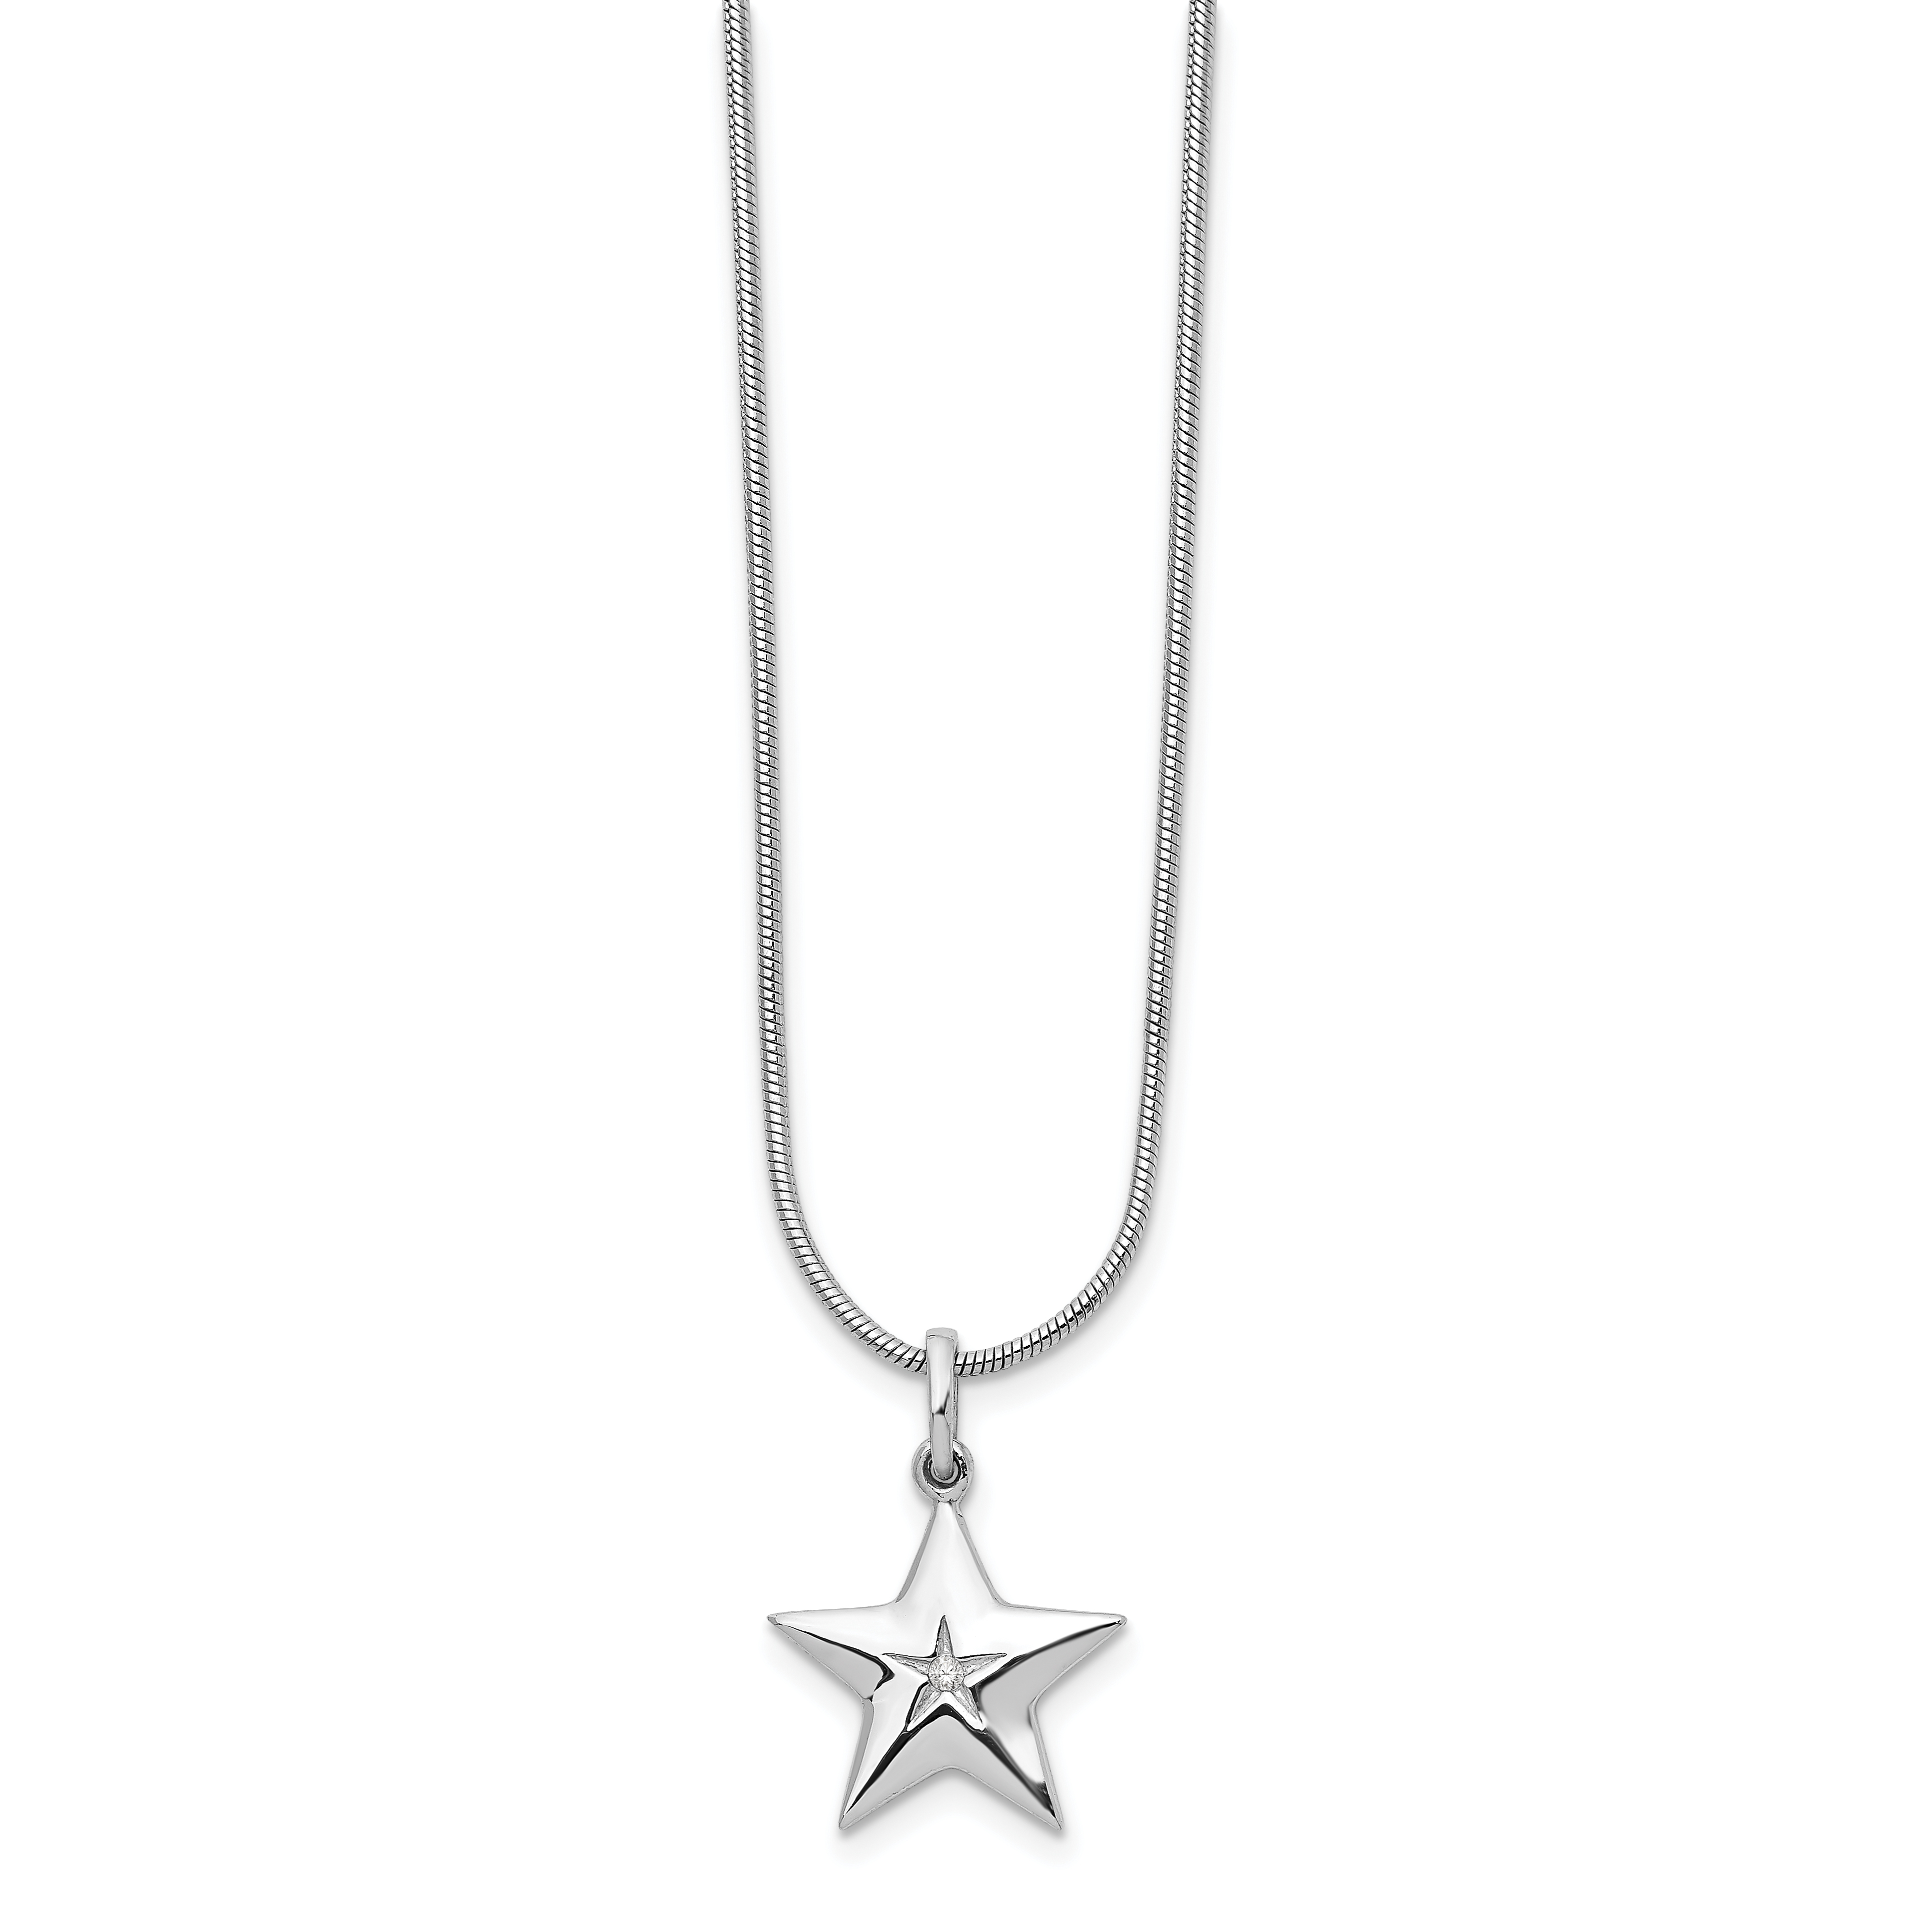 925 Sterling Silver Diamond Star Chain Necklace Pendant Charm Sun Moon Fine Jewelry Gifts For Women For Her - image 8 de 8